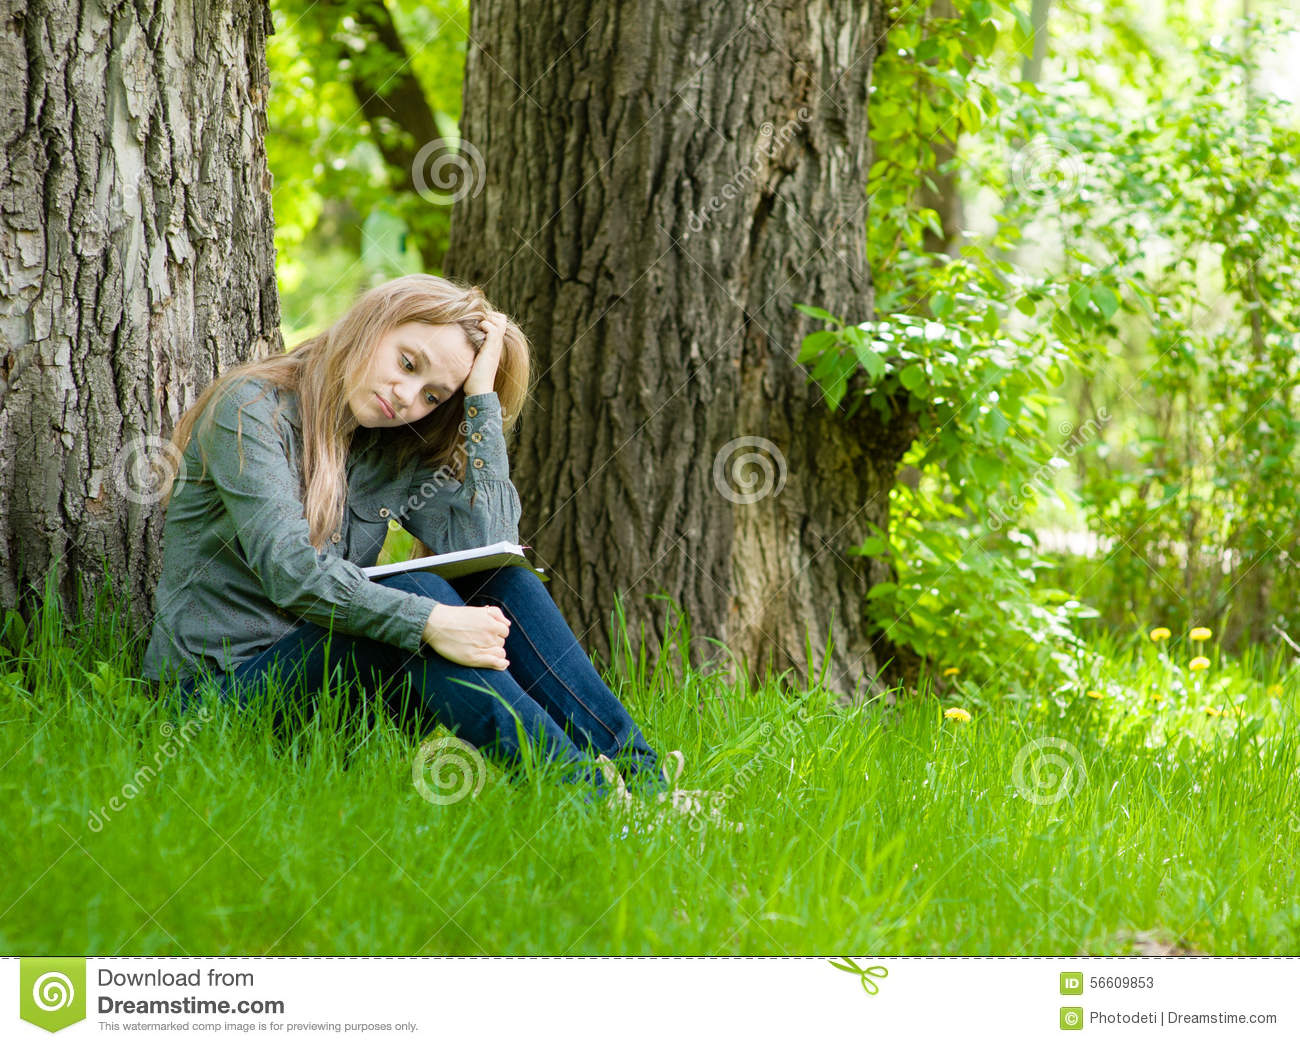 Sad Girl Sitting On Grass And Reading A Book Stock Photo - Image ...